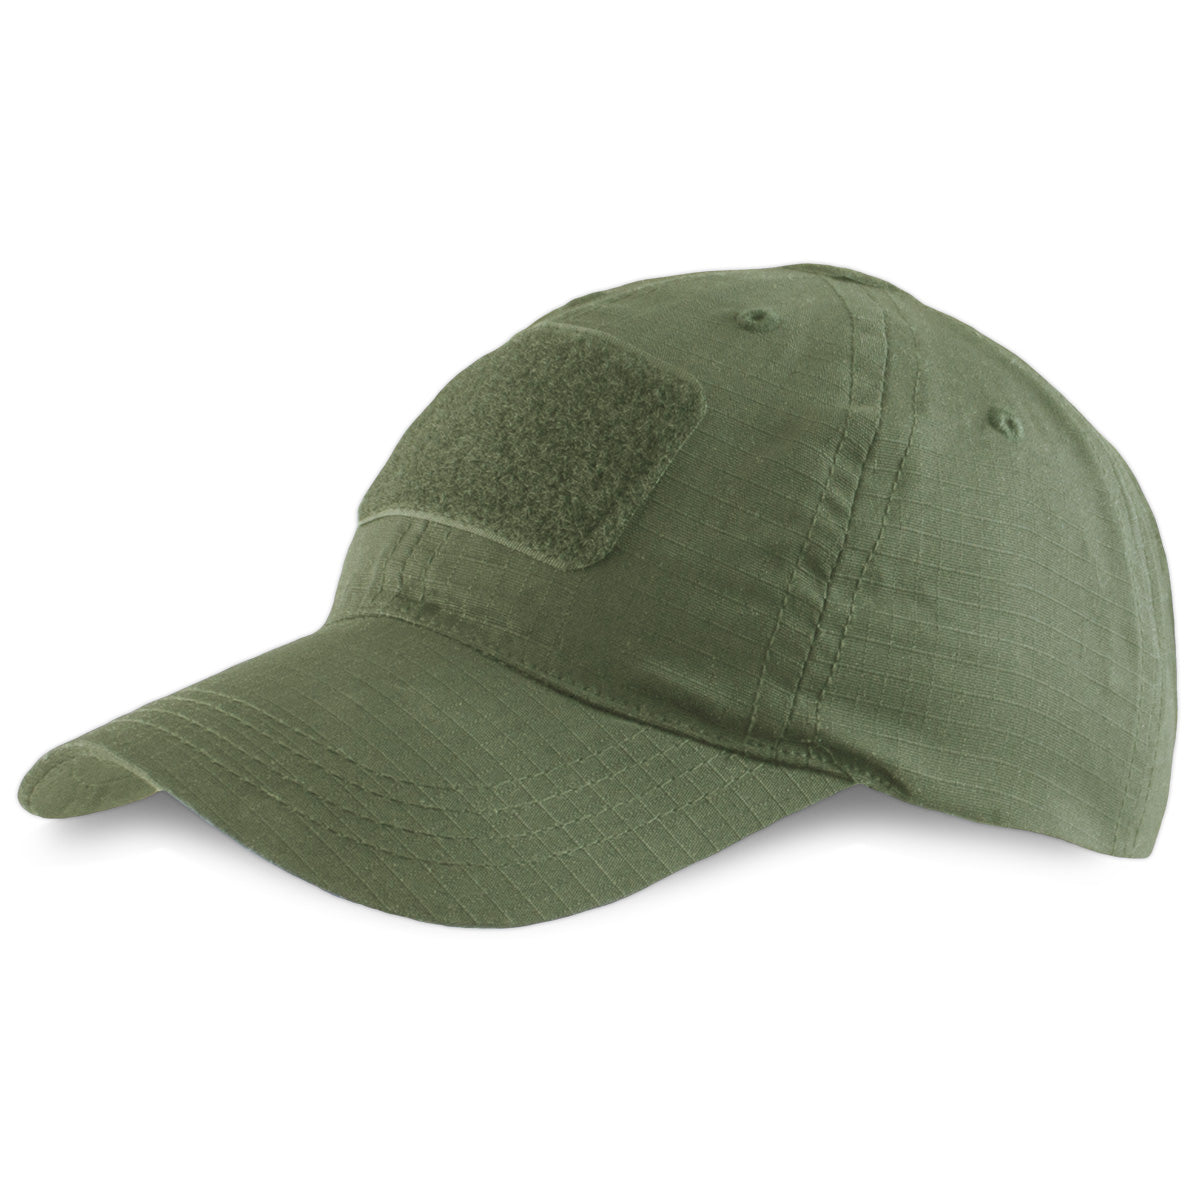 Tactical Patch Strap Back Cap Green - Bulldog Tactical Gear